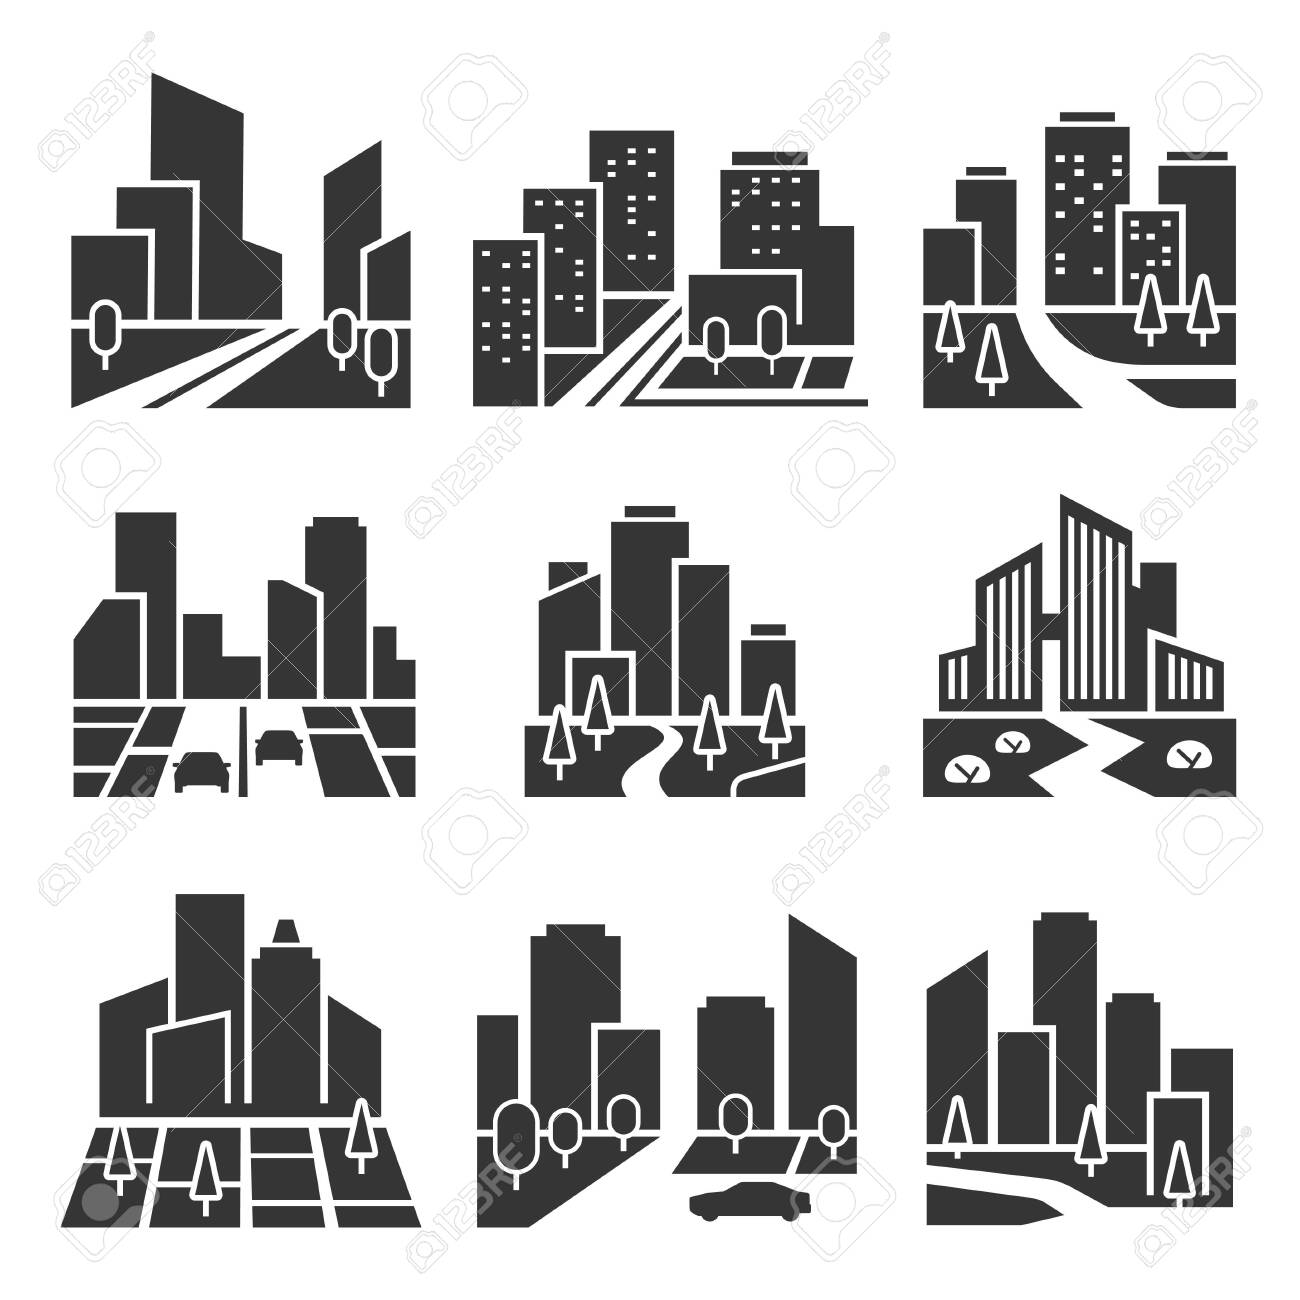 Residential area, housing estate silhouette icons set isolated on white. Cityscape, town. - 152764857